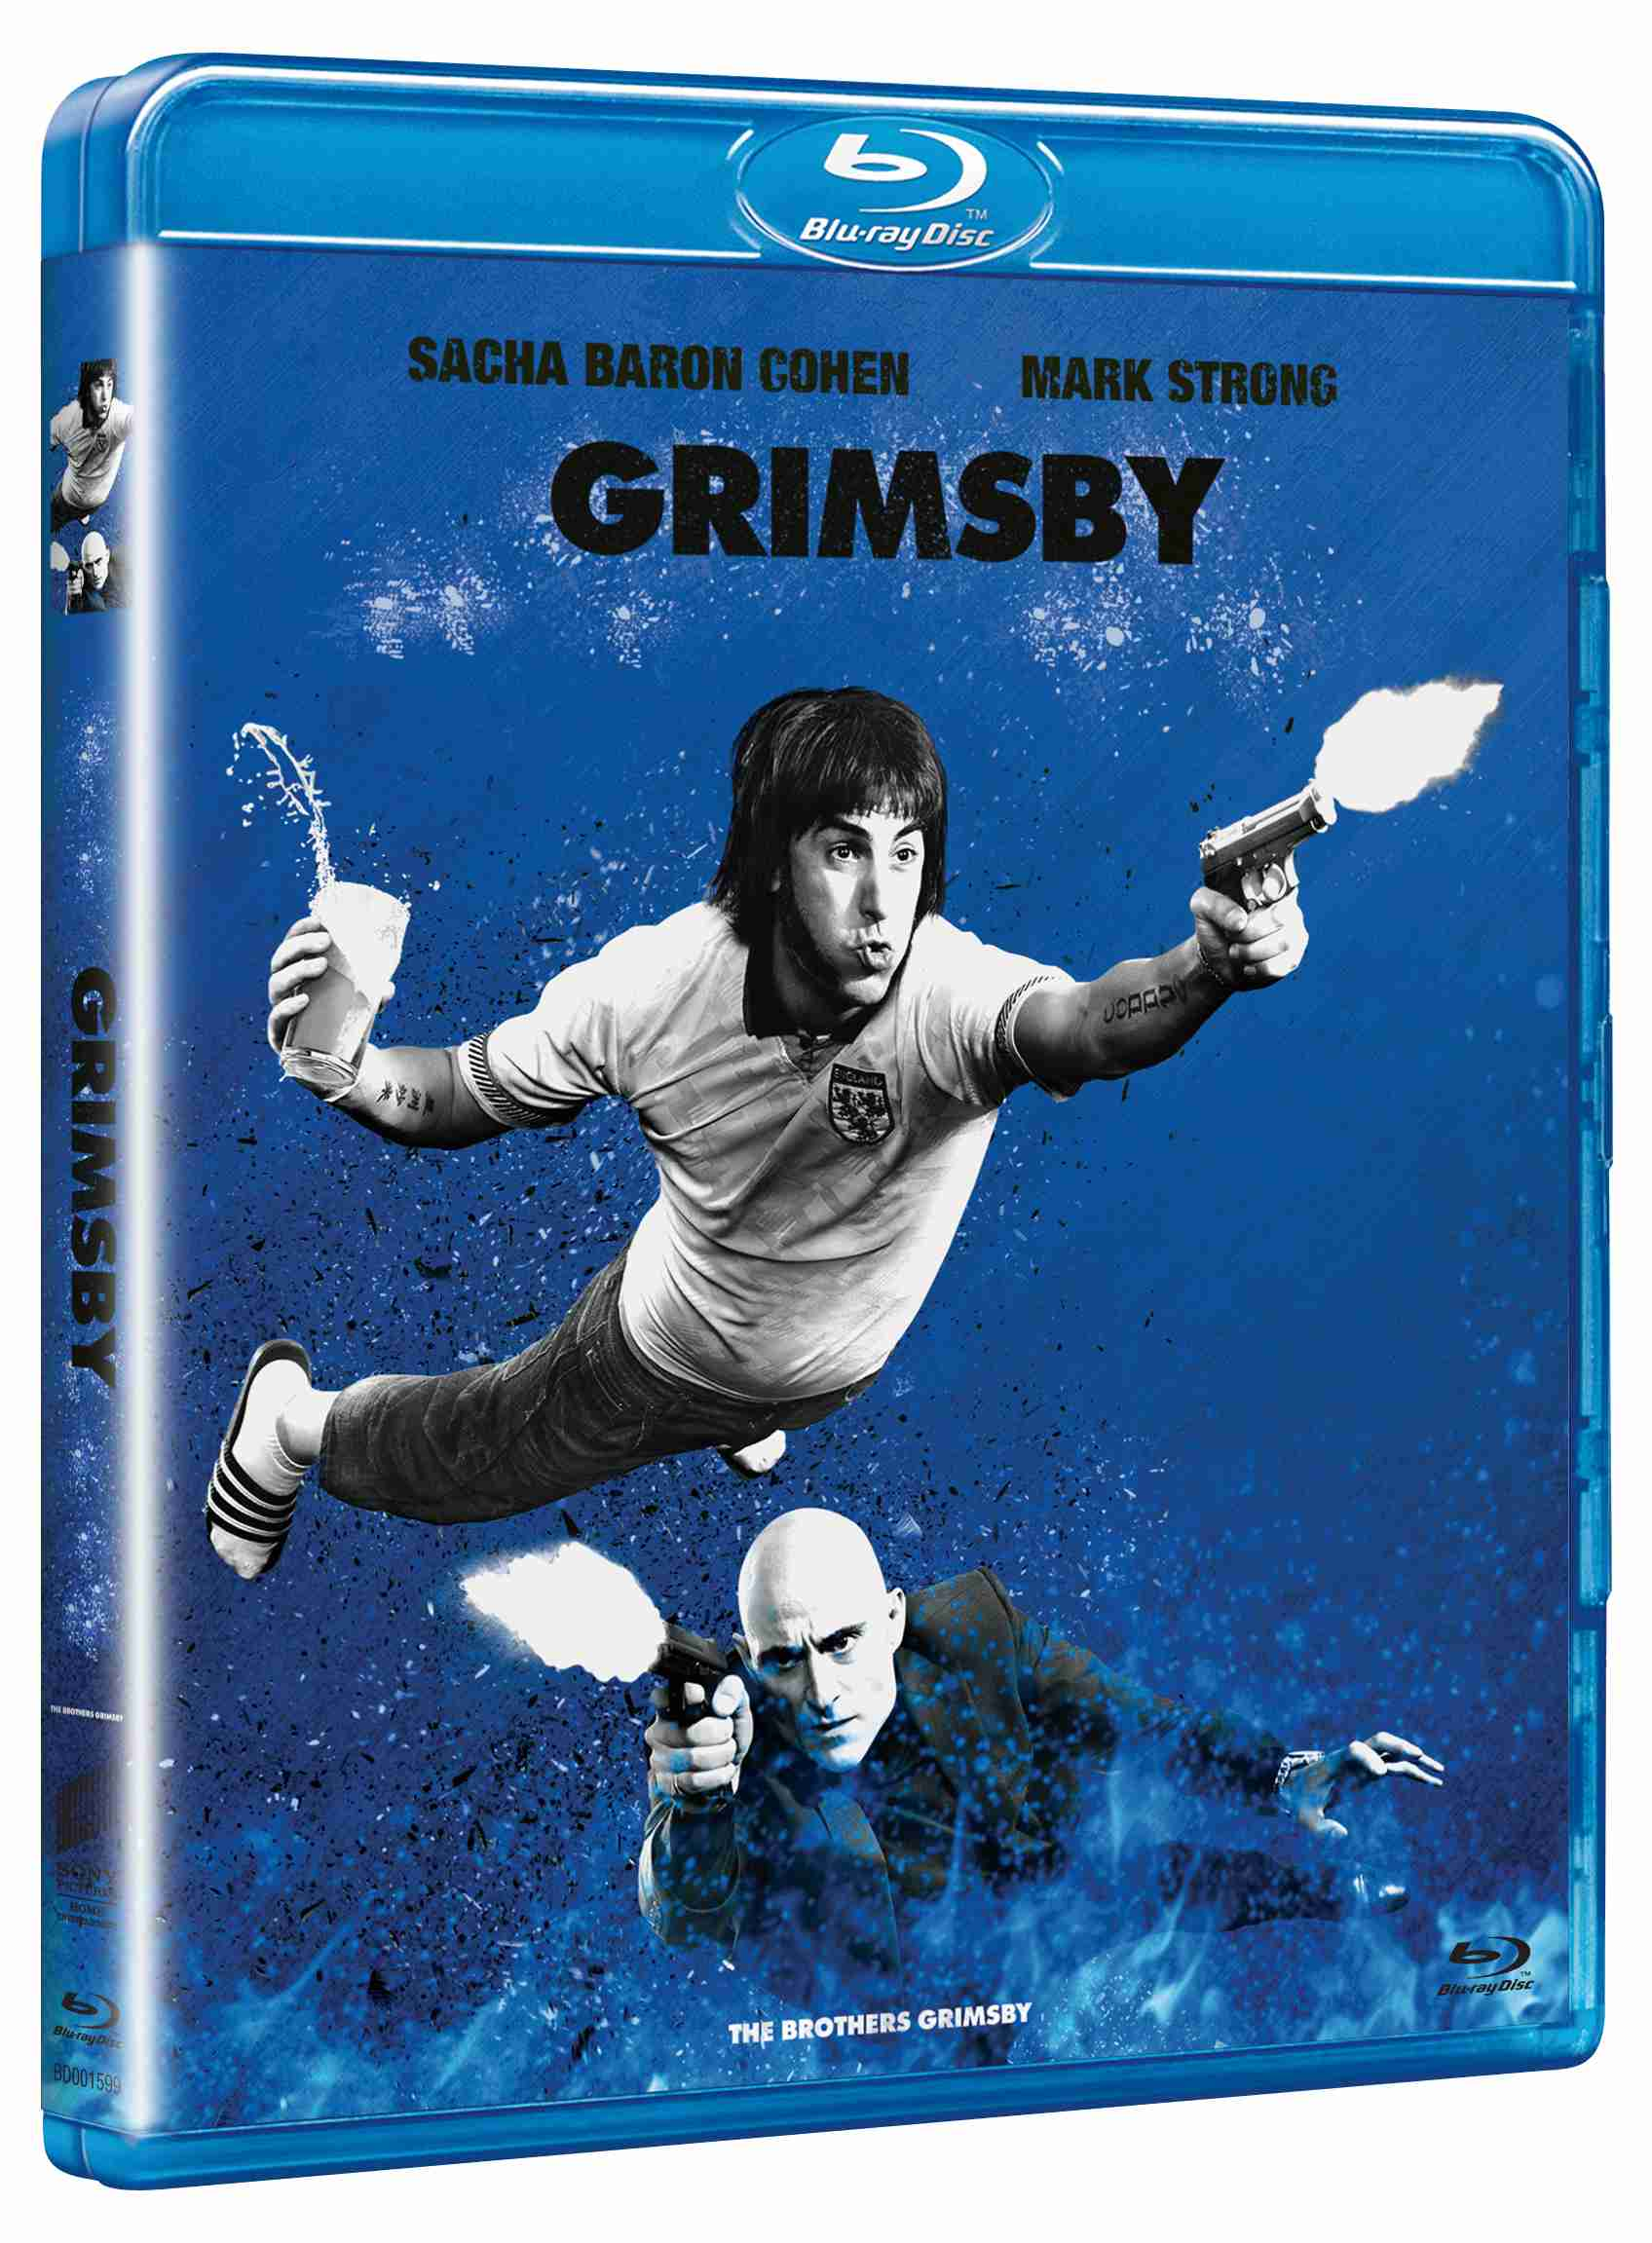 GRIMSBY (Big Face) - Blu-ray